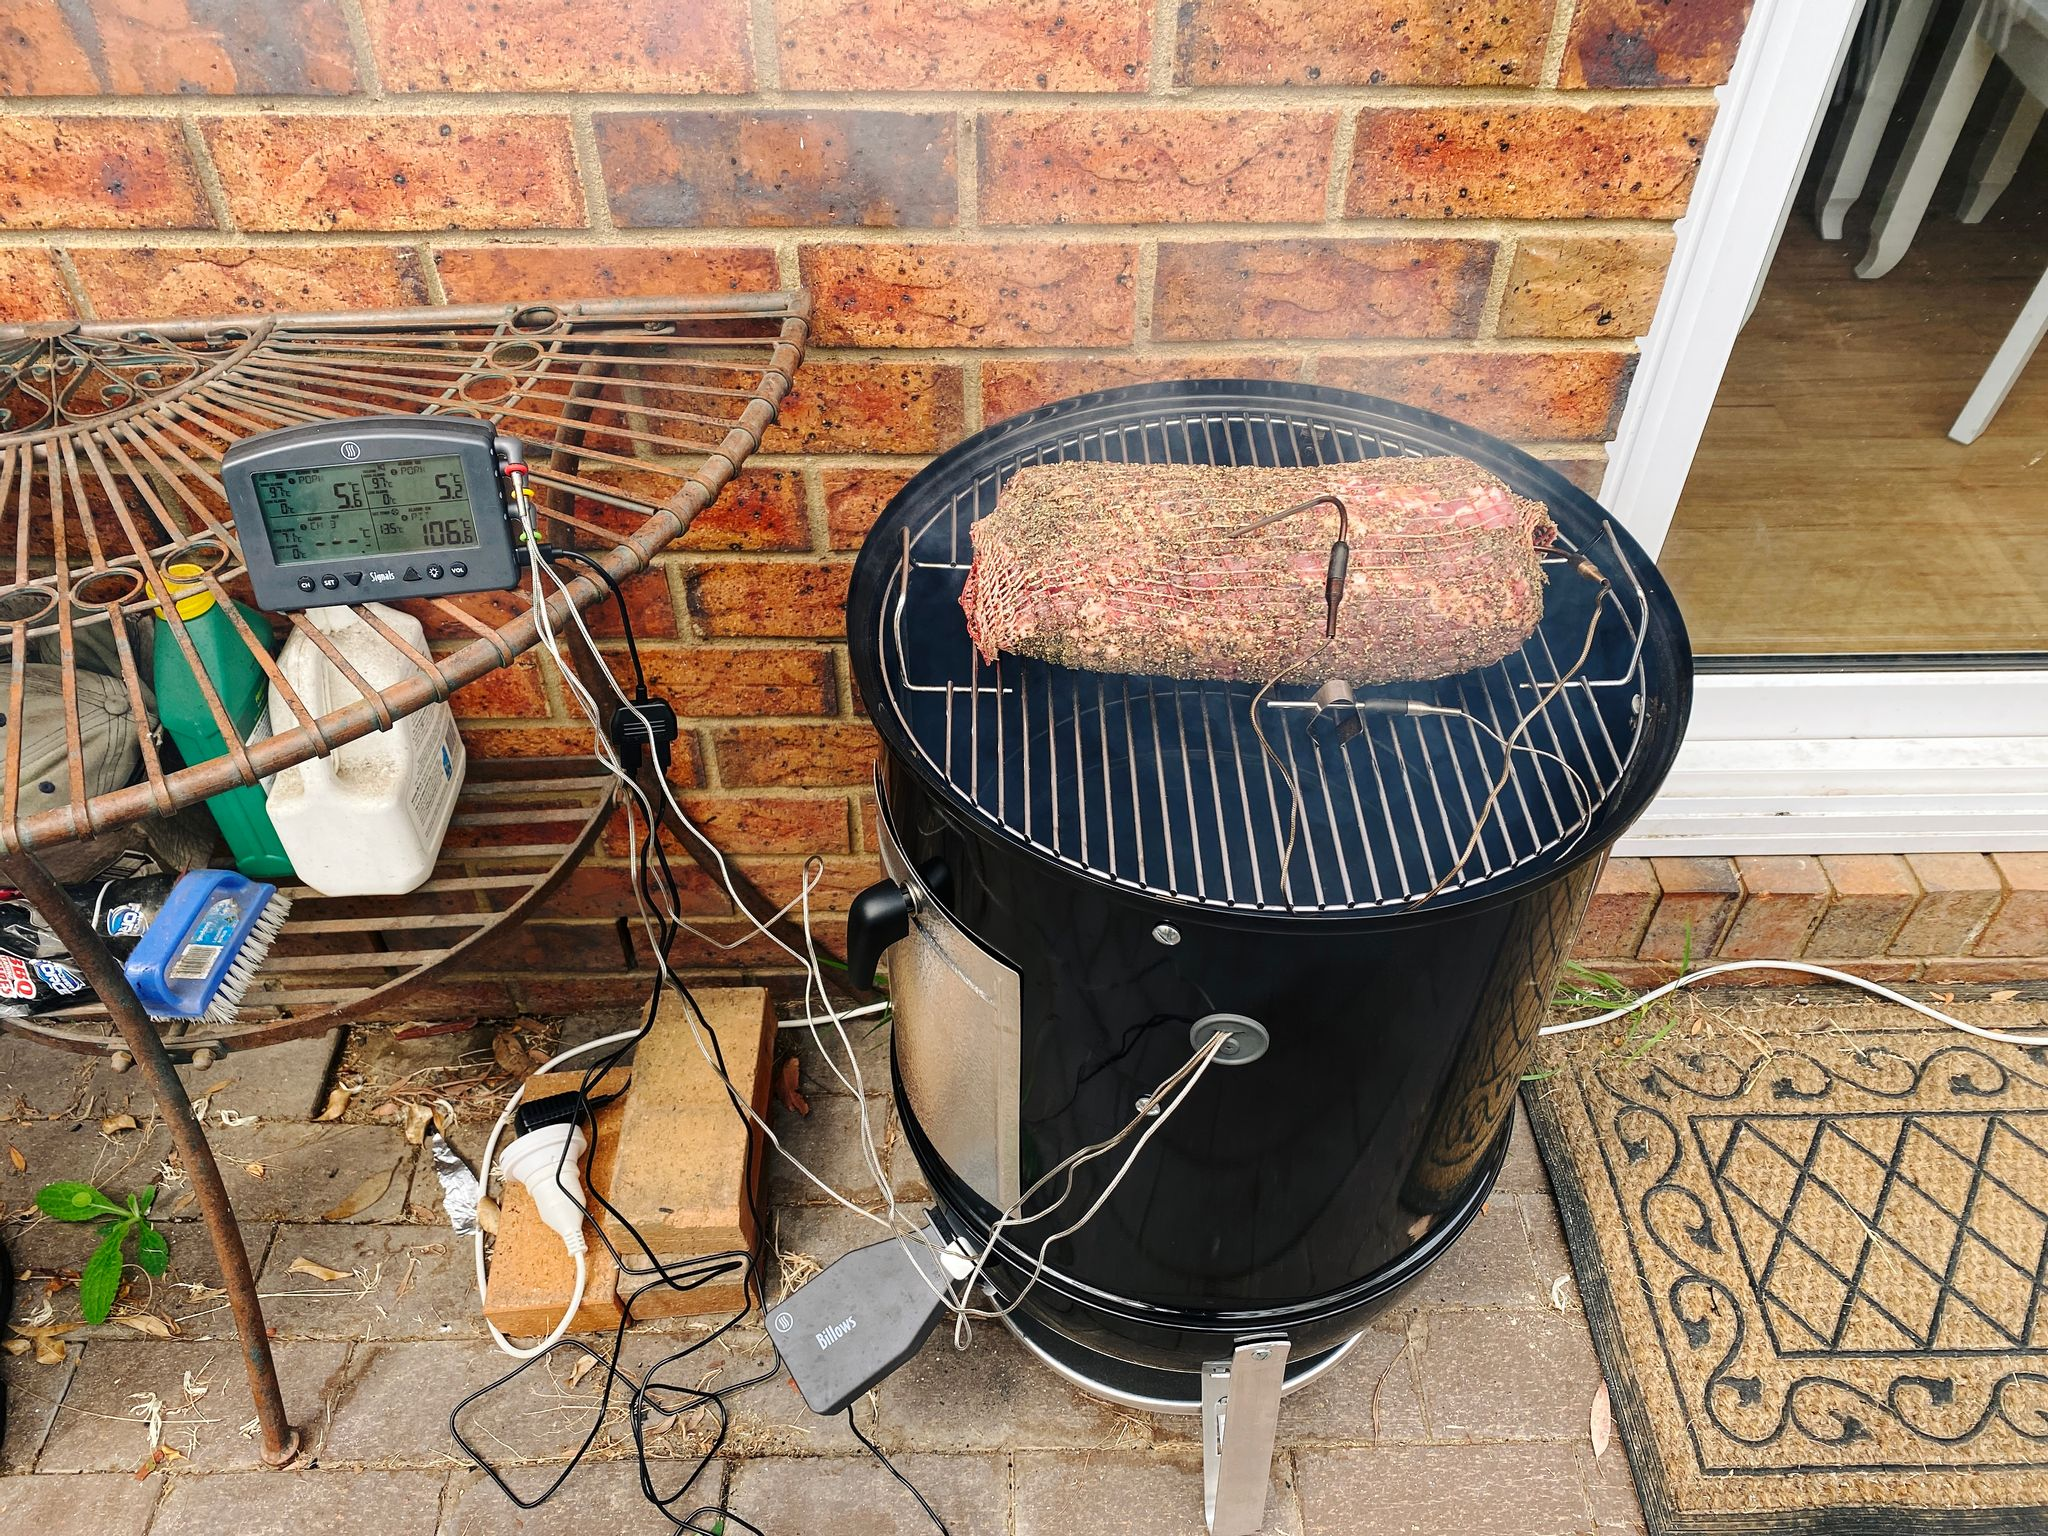 A photo of a big pork shoulder sitting on a Weber Smokey Mountain smoker, with a ThermoWorks temperature sensor on the table next to it and probes going into the meat and sitting alongside it to measure the ambient temperature in the smoker.